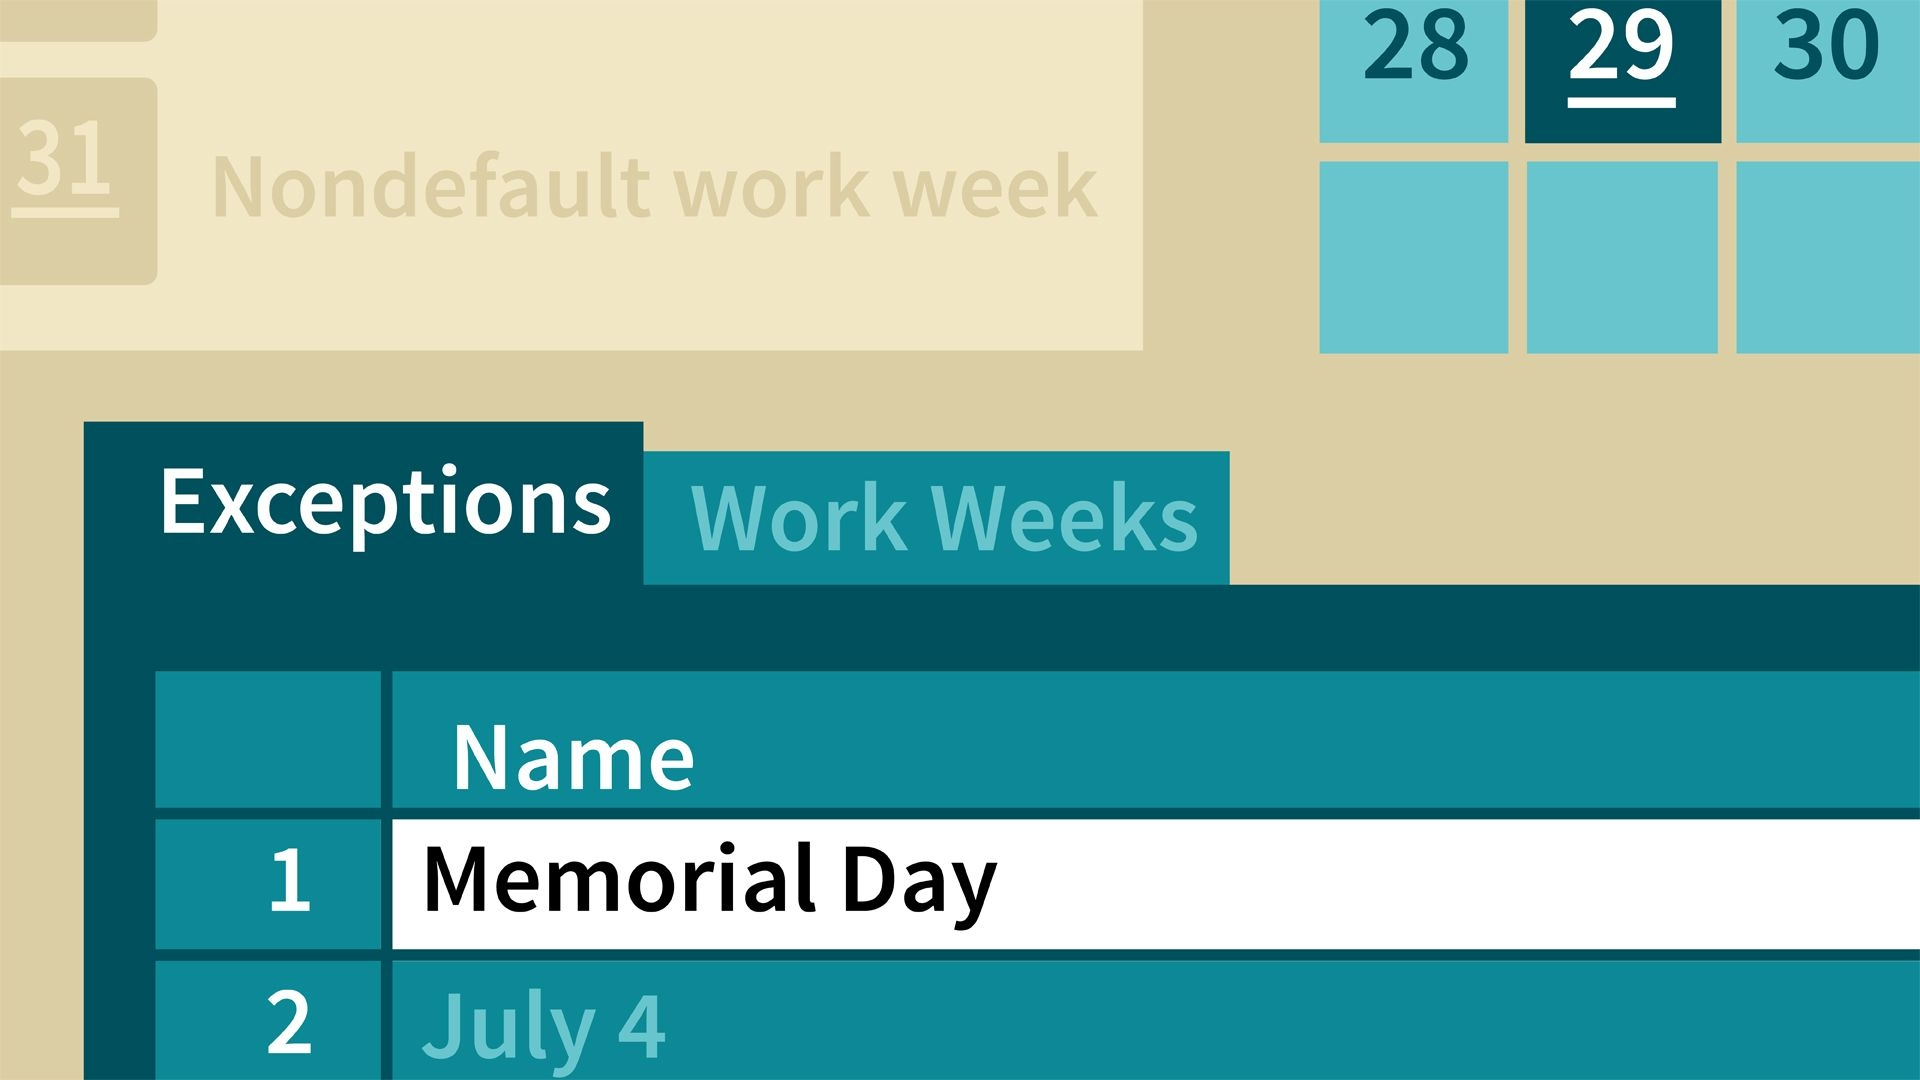 Create A Calendar For A Two-Week Work Schedule